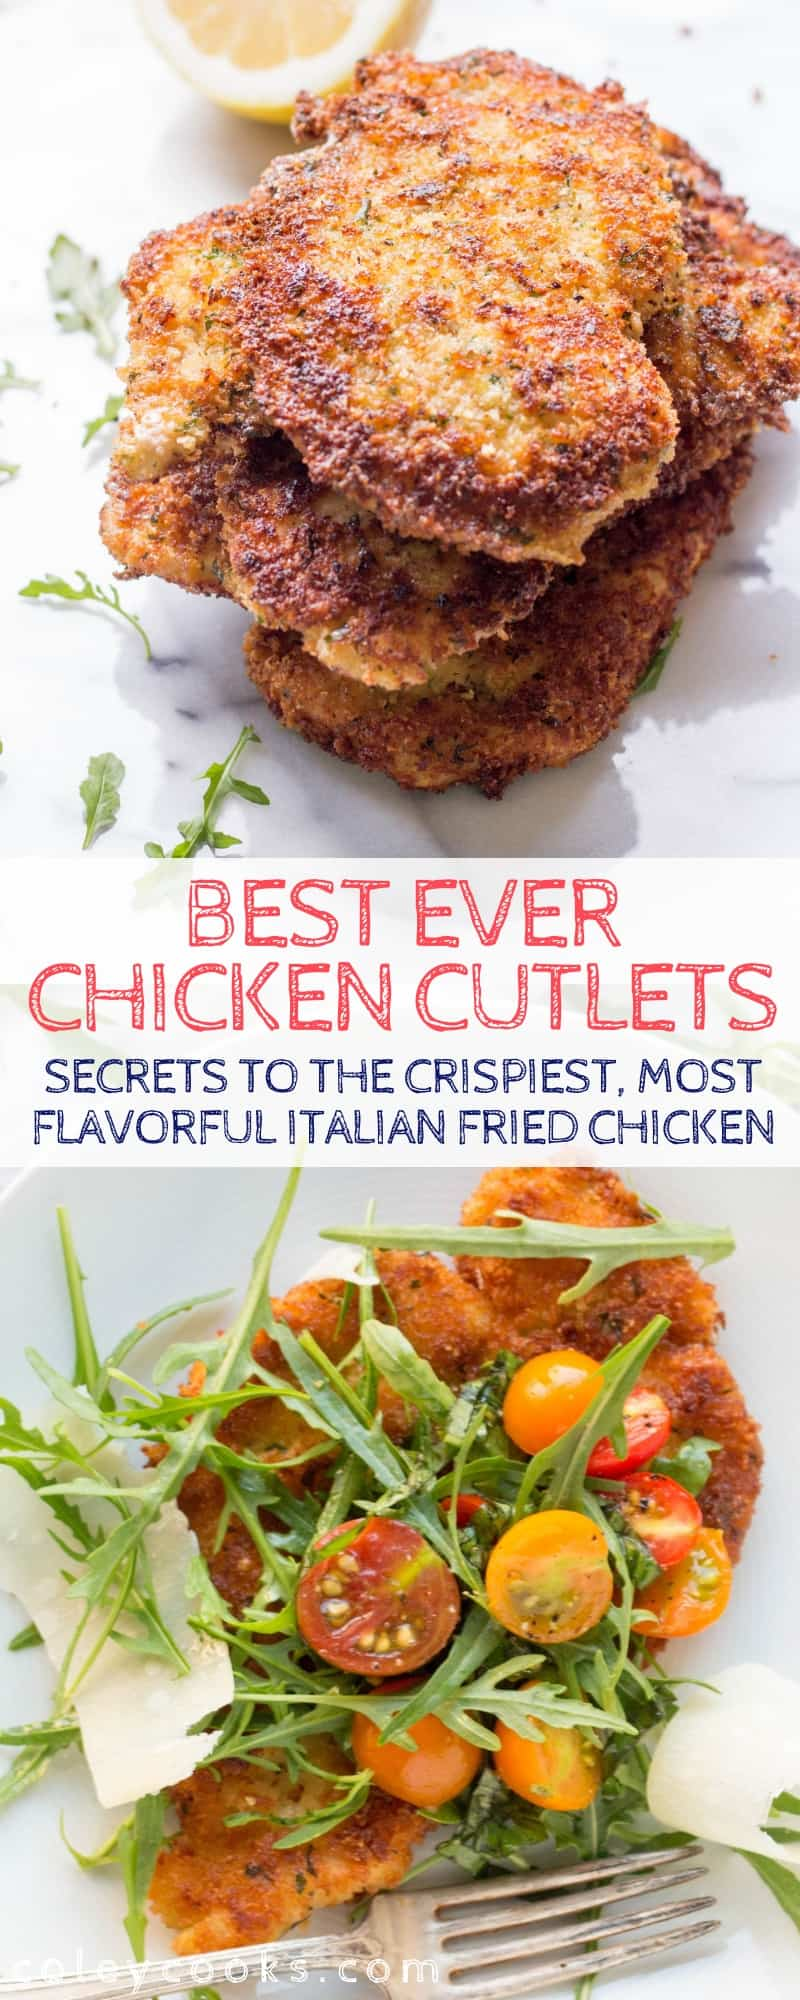 Secrets to the crispiest, thinnest, most tender, perfectly cooked Italian fried chicken cutlets EVER! Perfect for Chicken Milanese and Chicken Parmesan #chicken #fried #italian #cutlets #recipe #best   ColeyCooks.com